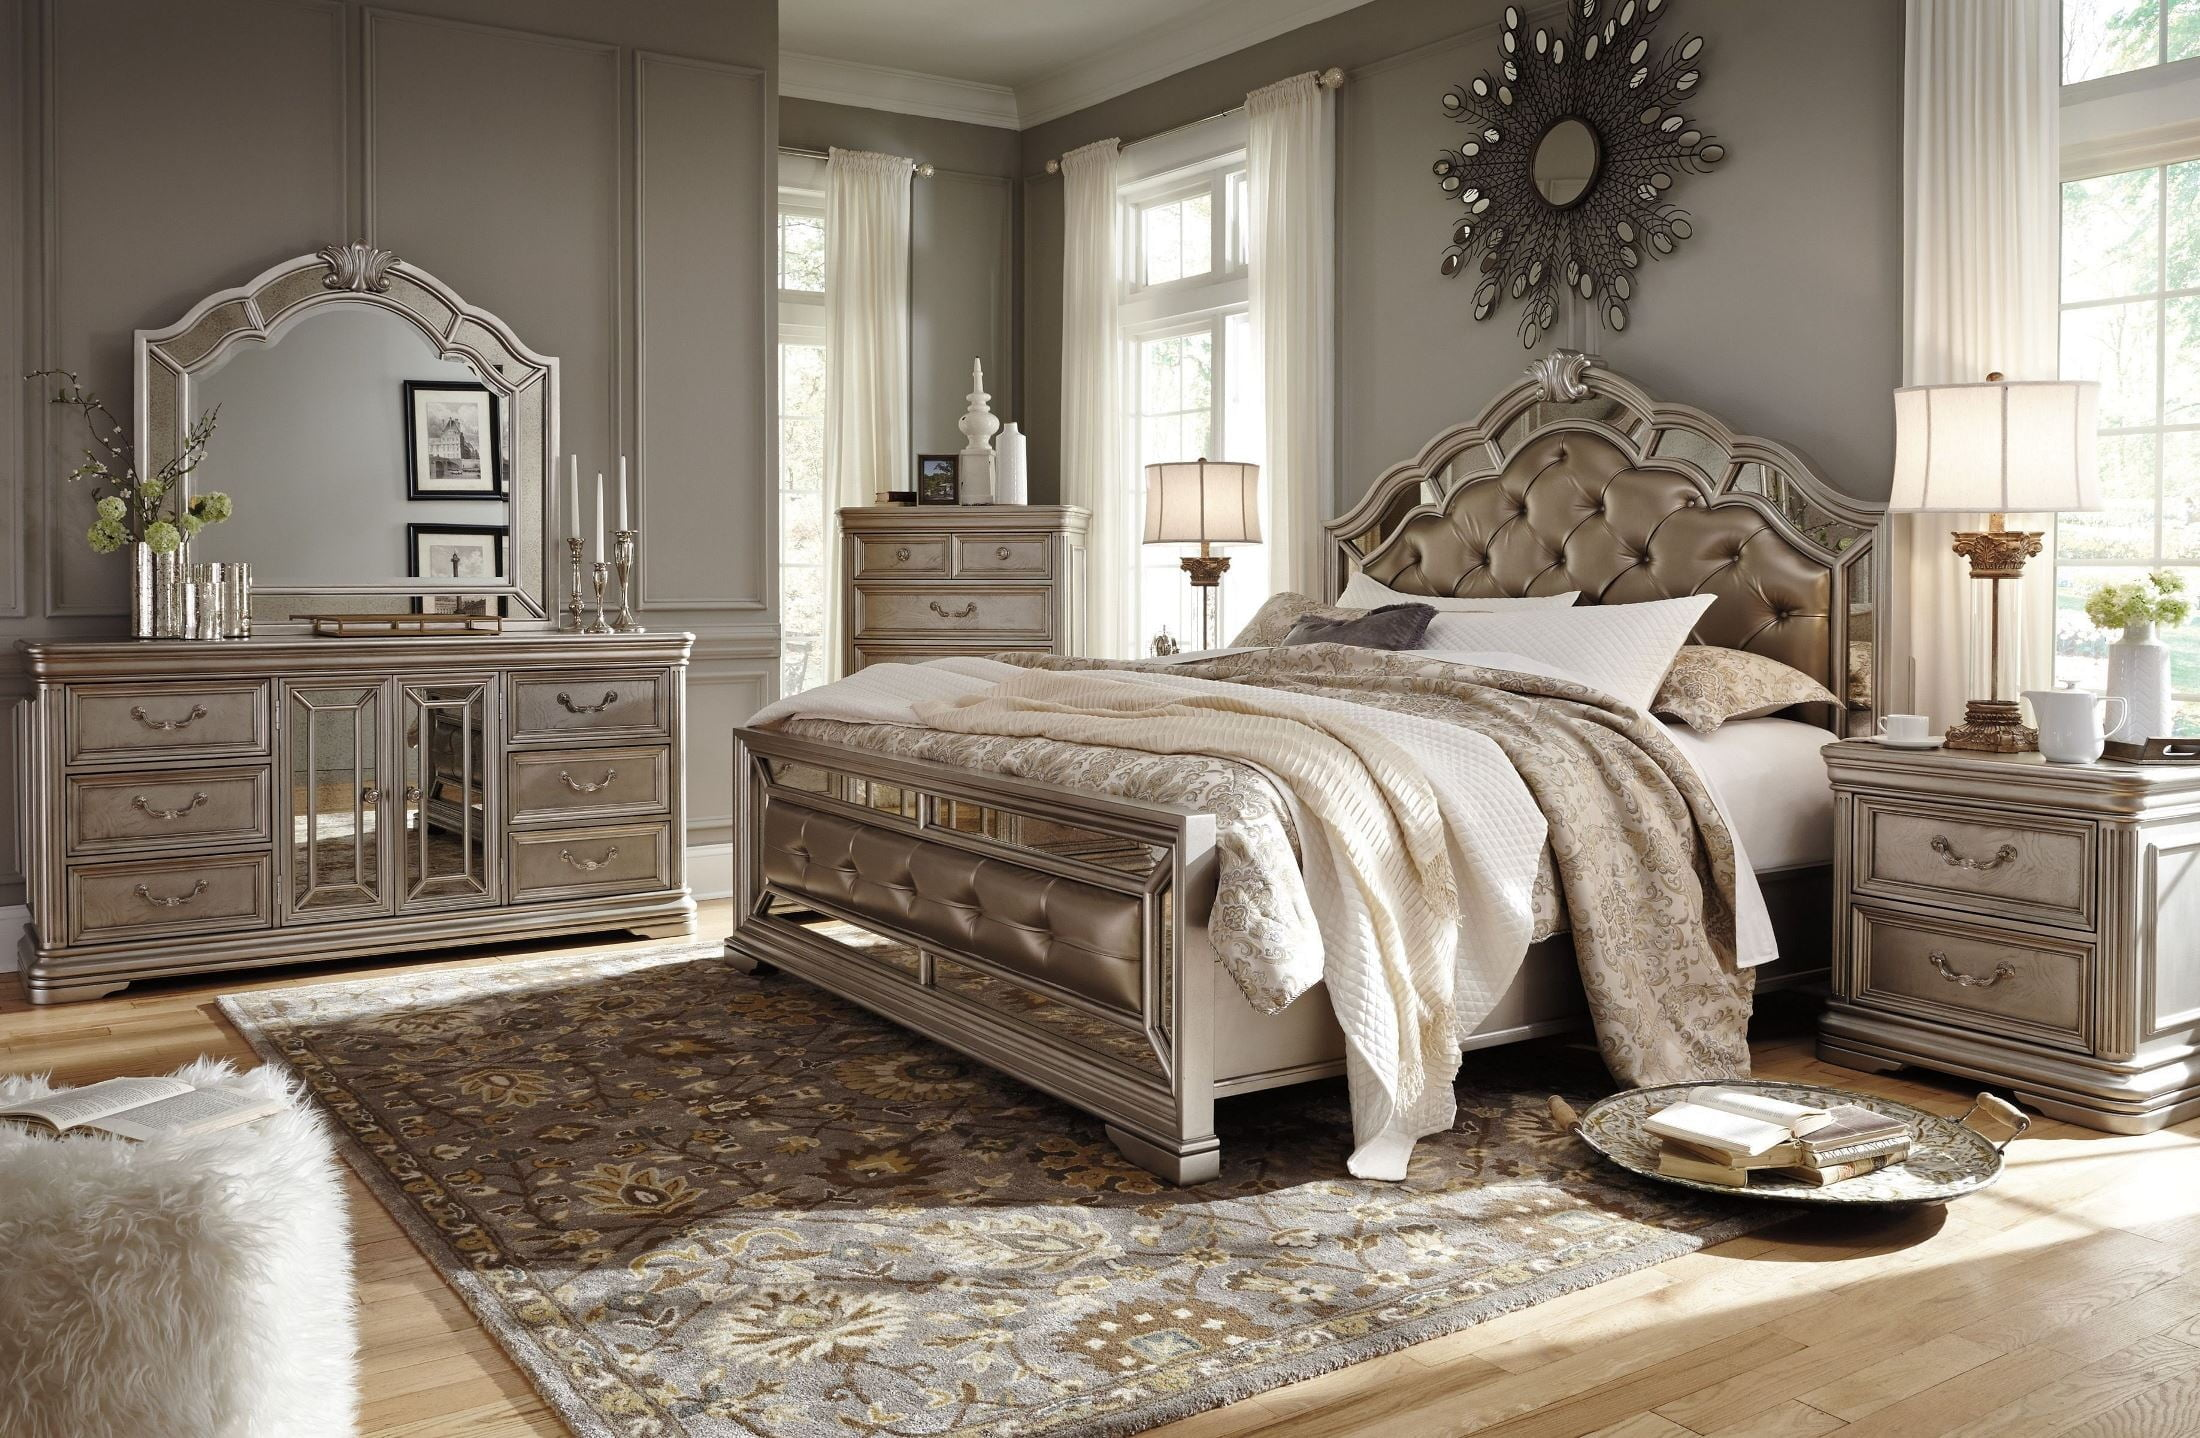 Trend Silver Bedroom Set Minimalist